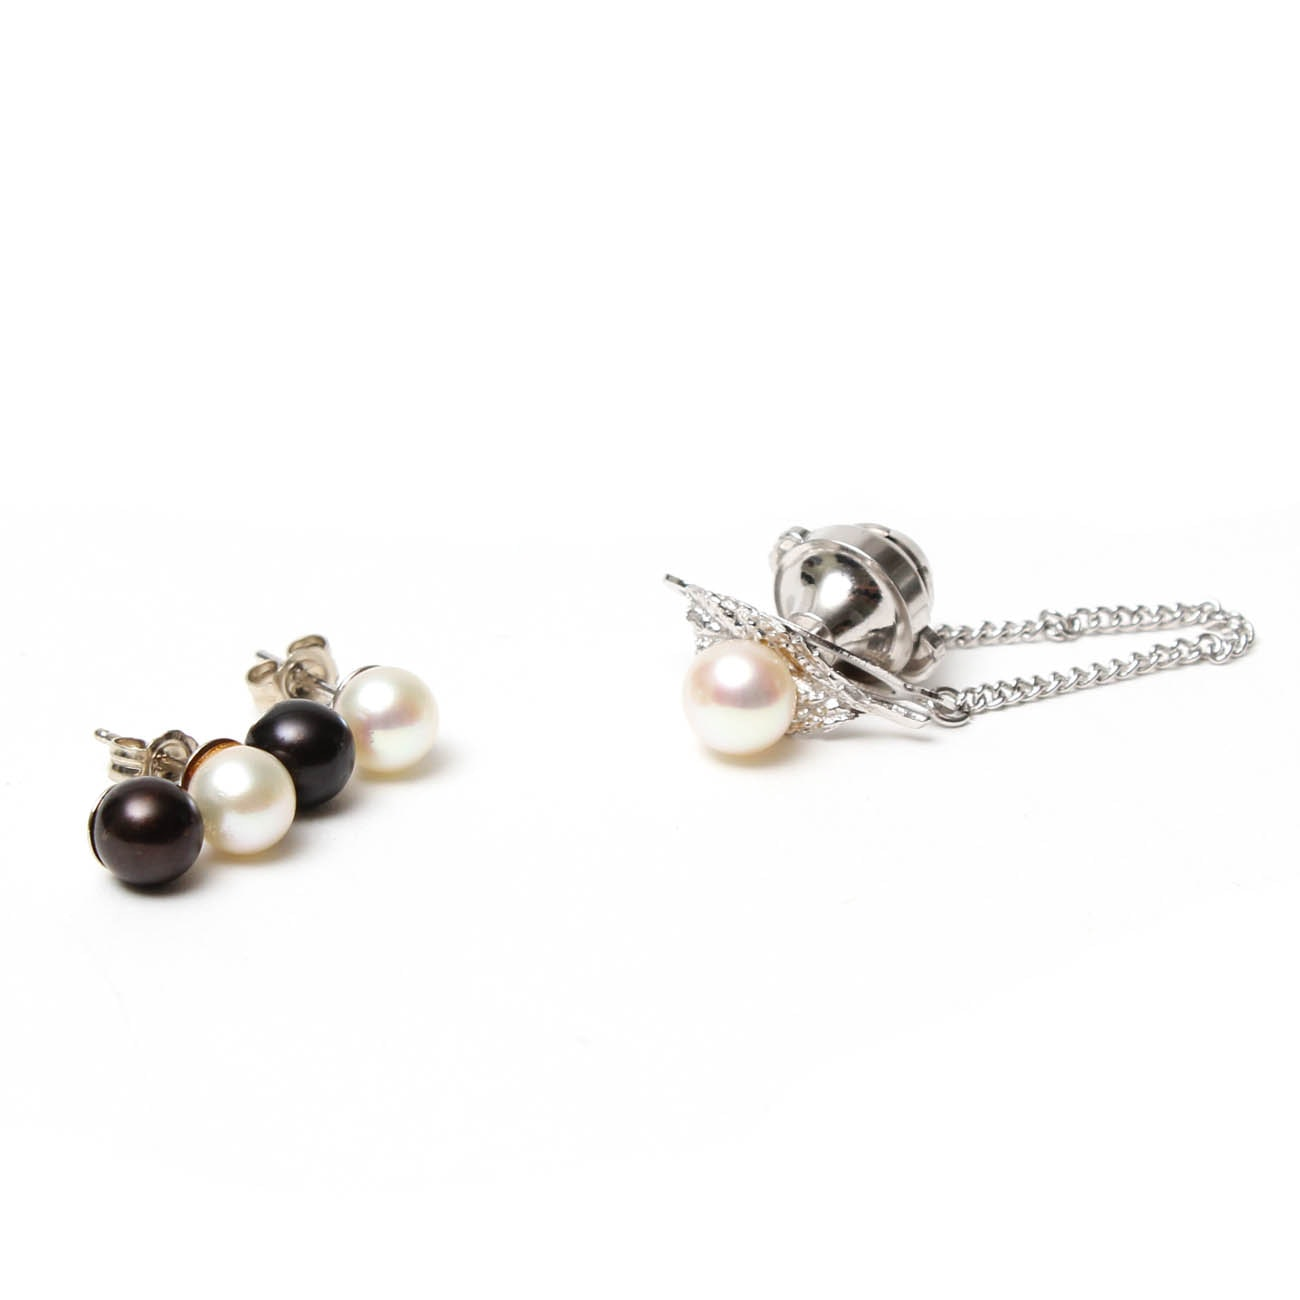 10K and 14K White Gold Cultured Pearl Jewelry